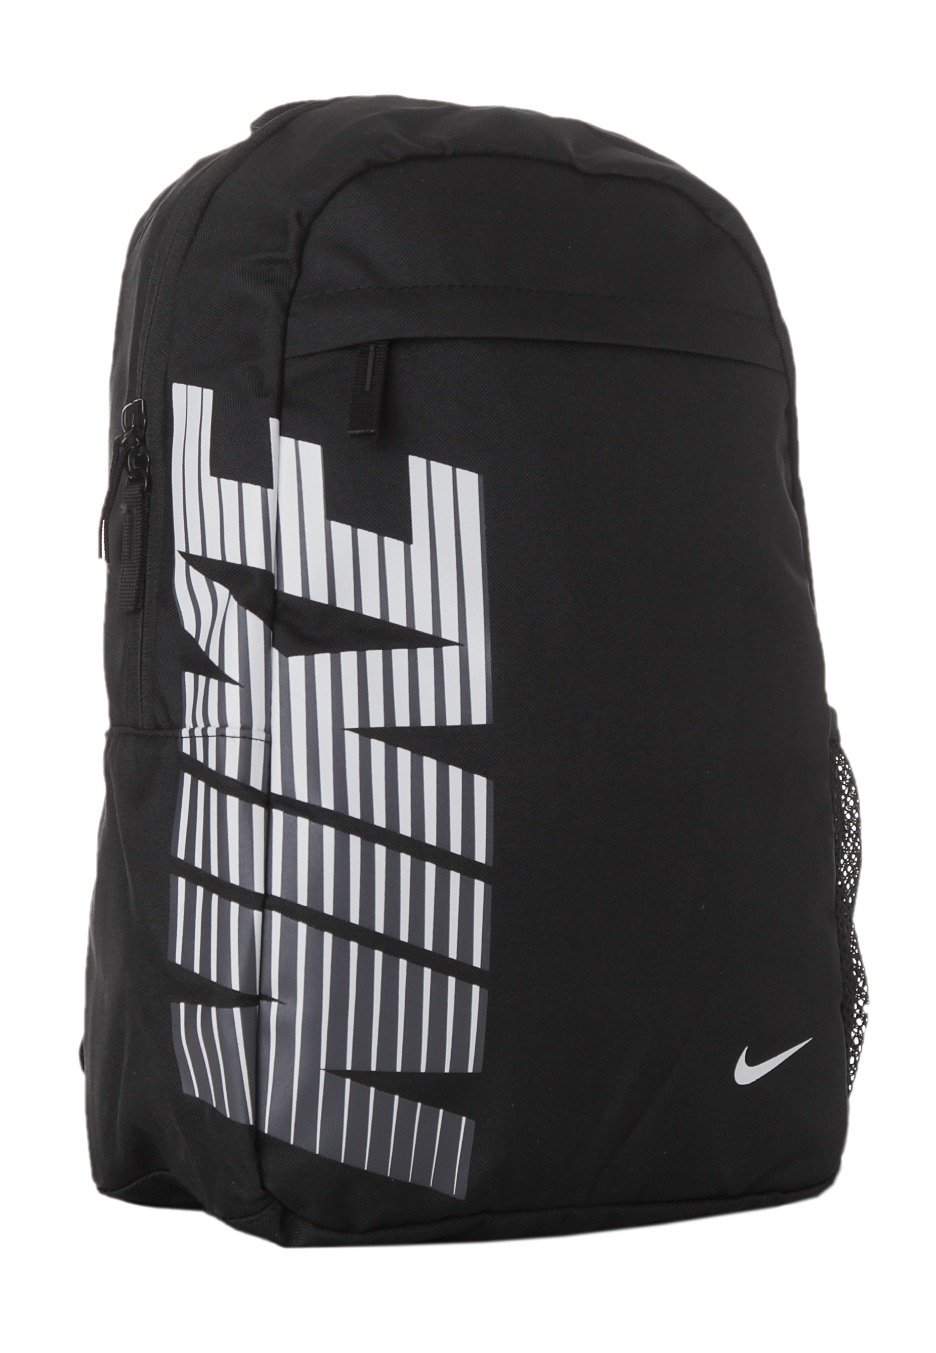 Nike - Classic Sand Black - Backpack - Streetwear Shop - Impericon.com UK ad8c14bbaa74d